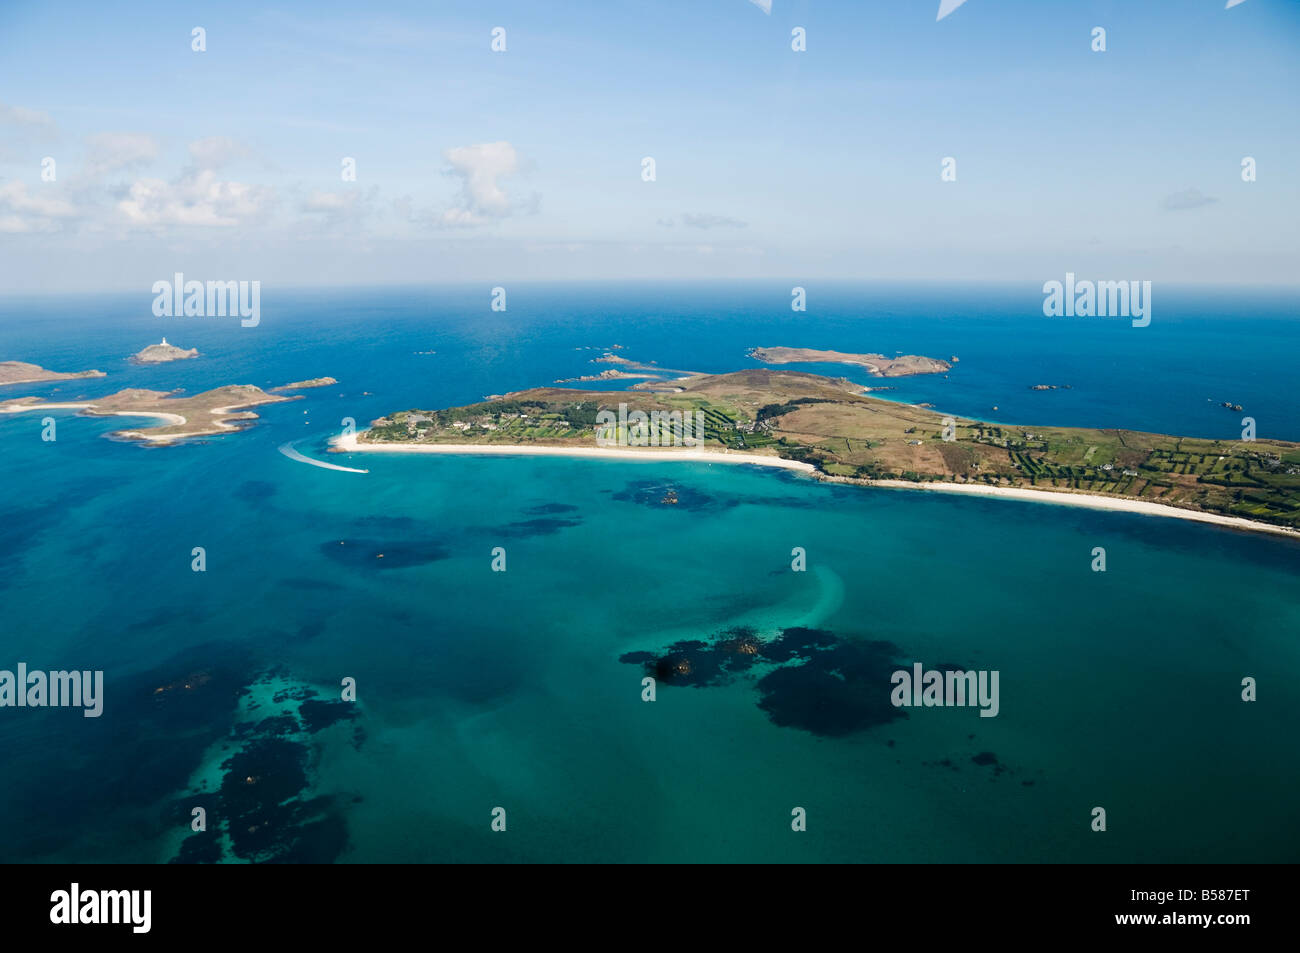 Aerial shot of St. Martins, Isles of Scilly, off Cornwall, United Kingdom, Europe - Stock Image